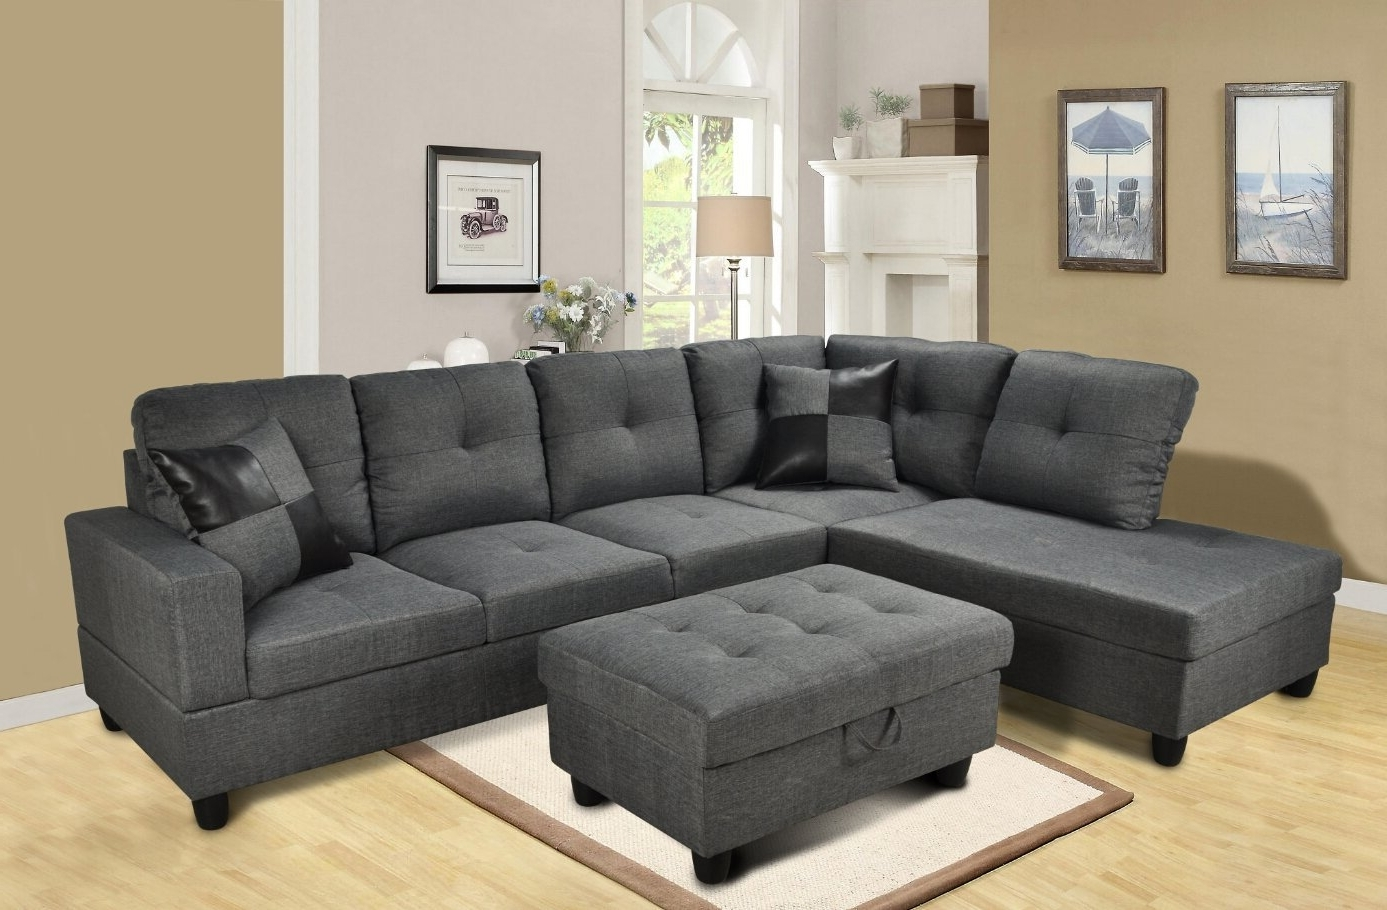 Sectional Sofas Under 600 Intended For Most Recent Amazon: Beverly Furniture 3 Piece Microfiber And Faux Leather (View 15 of 15)